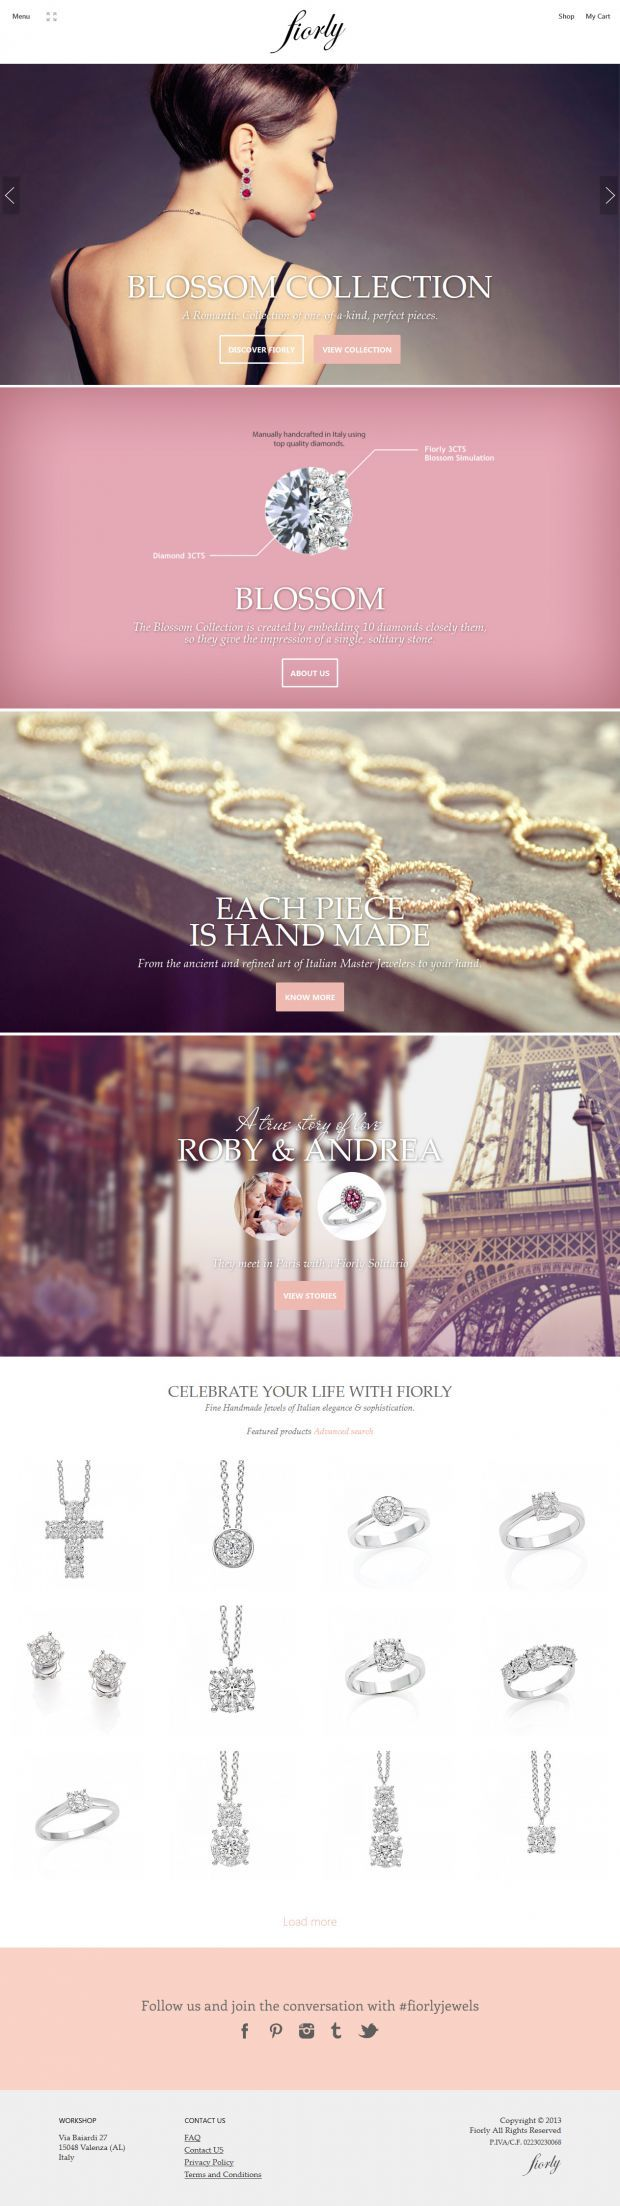 Fiorly - Italian crafted hand-made jewelry